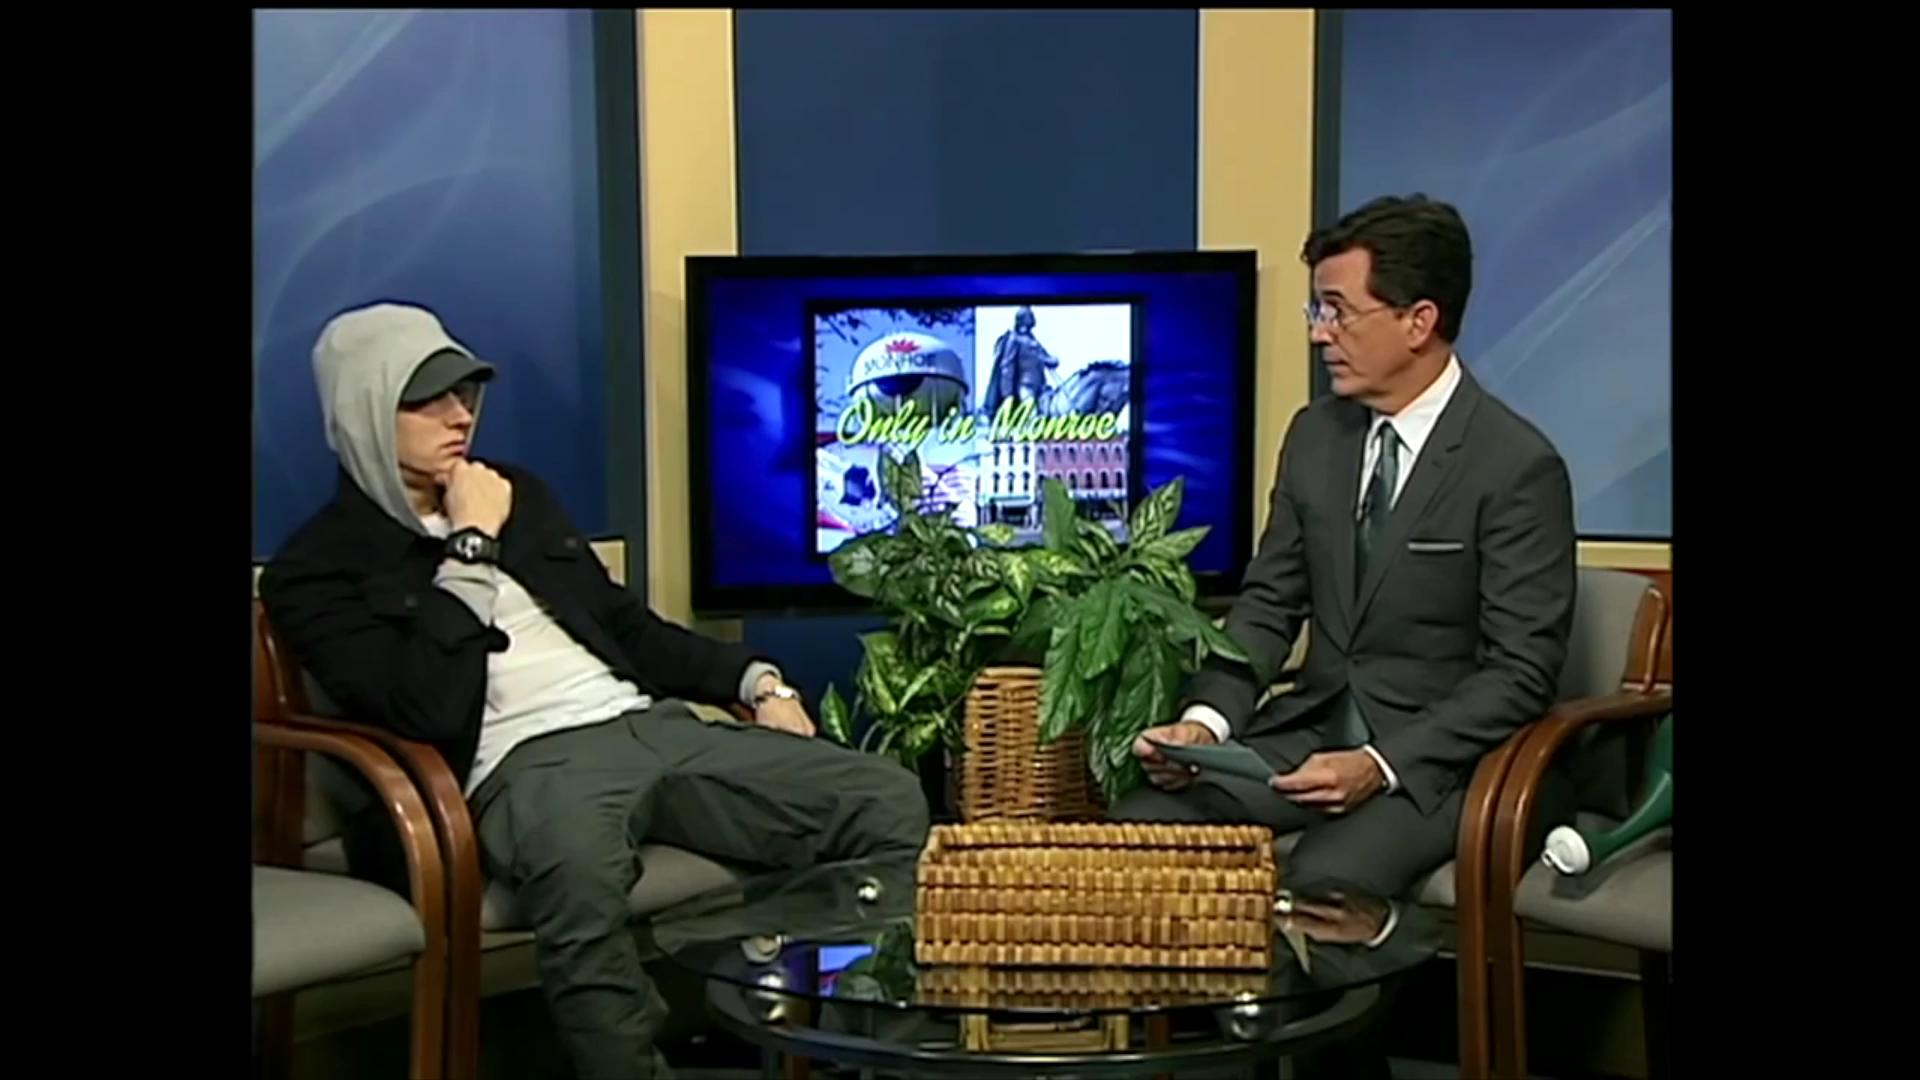 Stephen Colbert interviews Eminem on Michigan public access TV